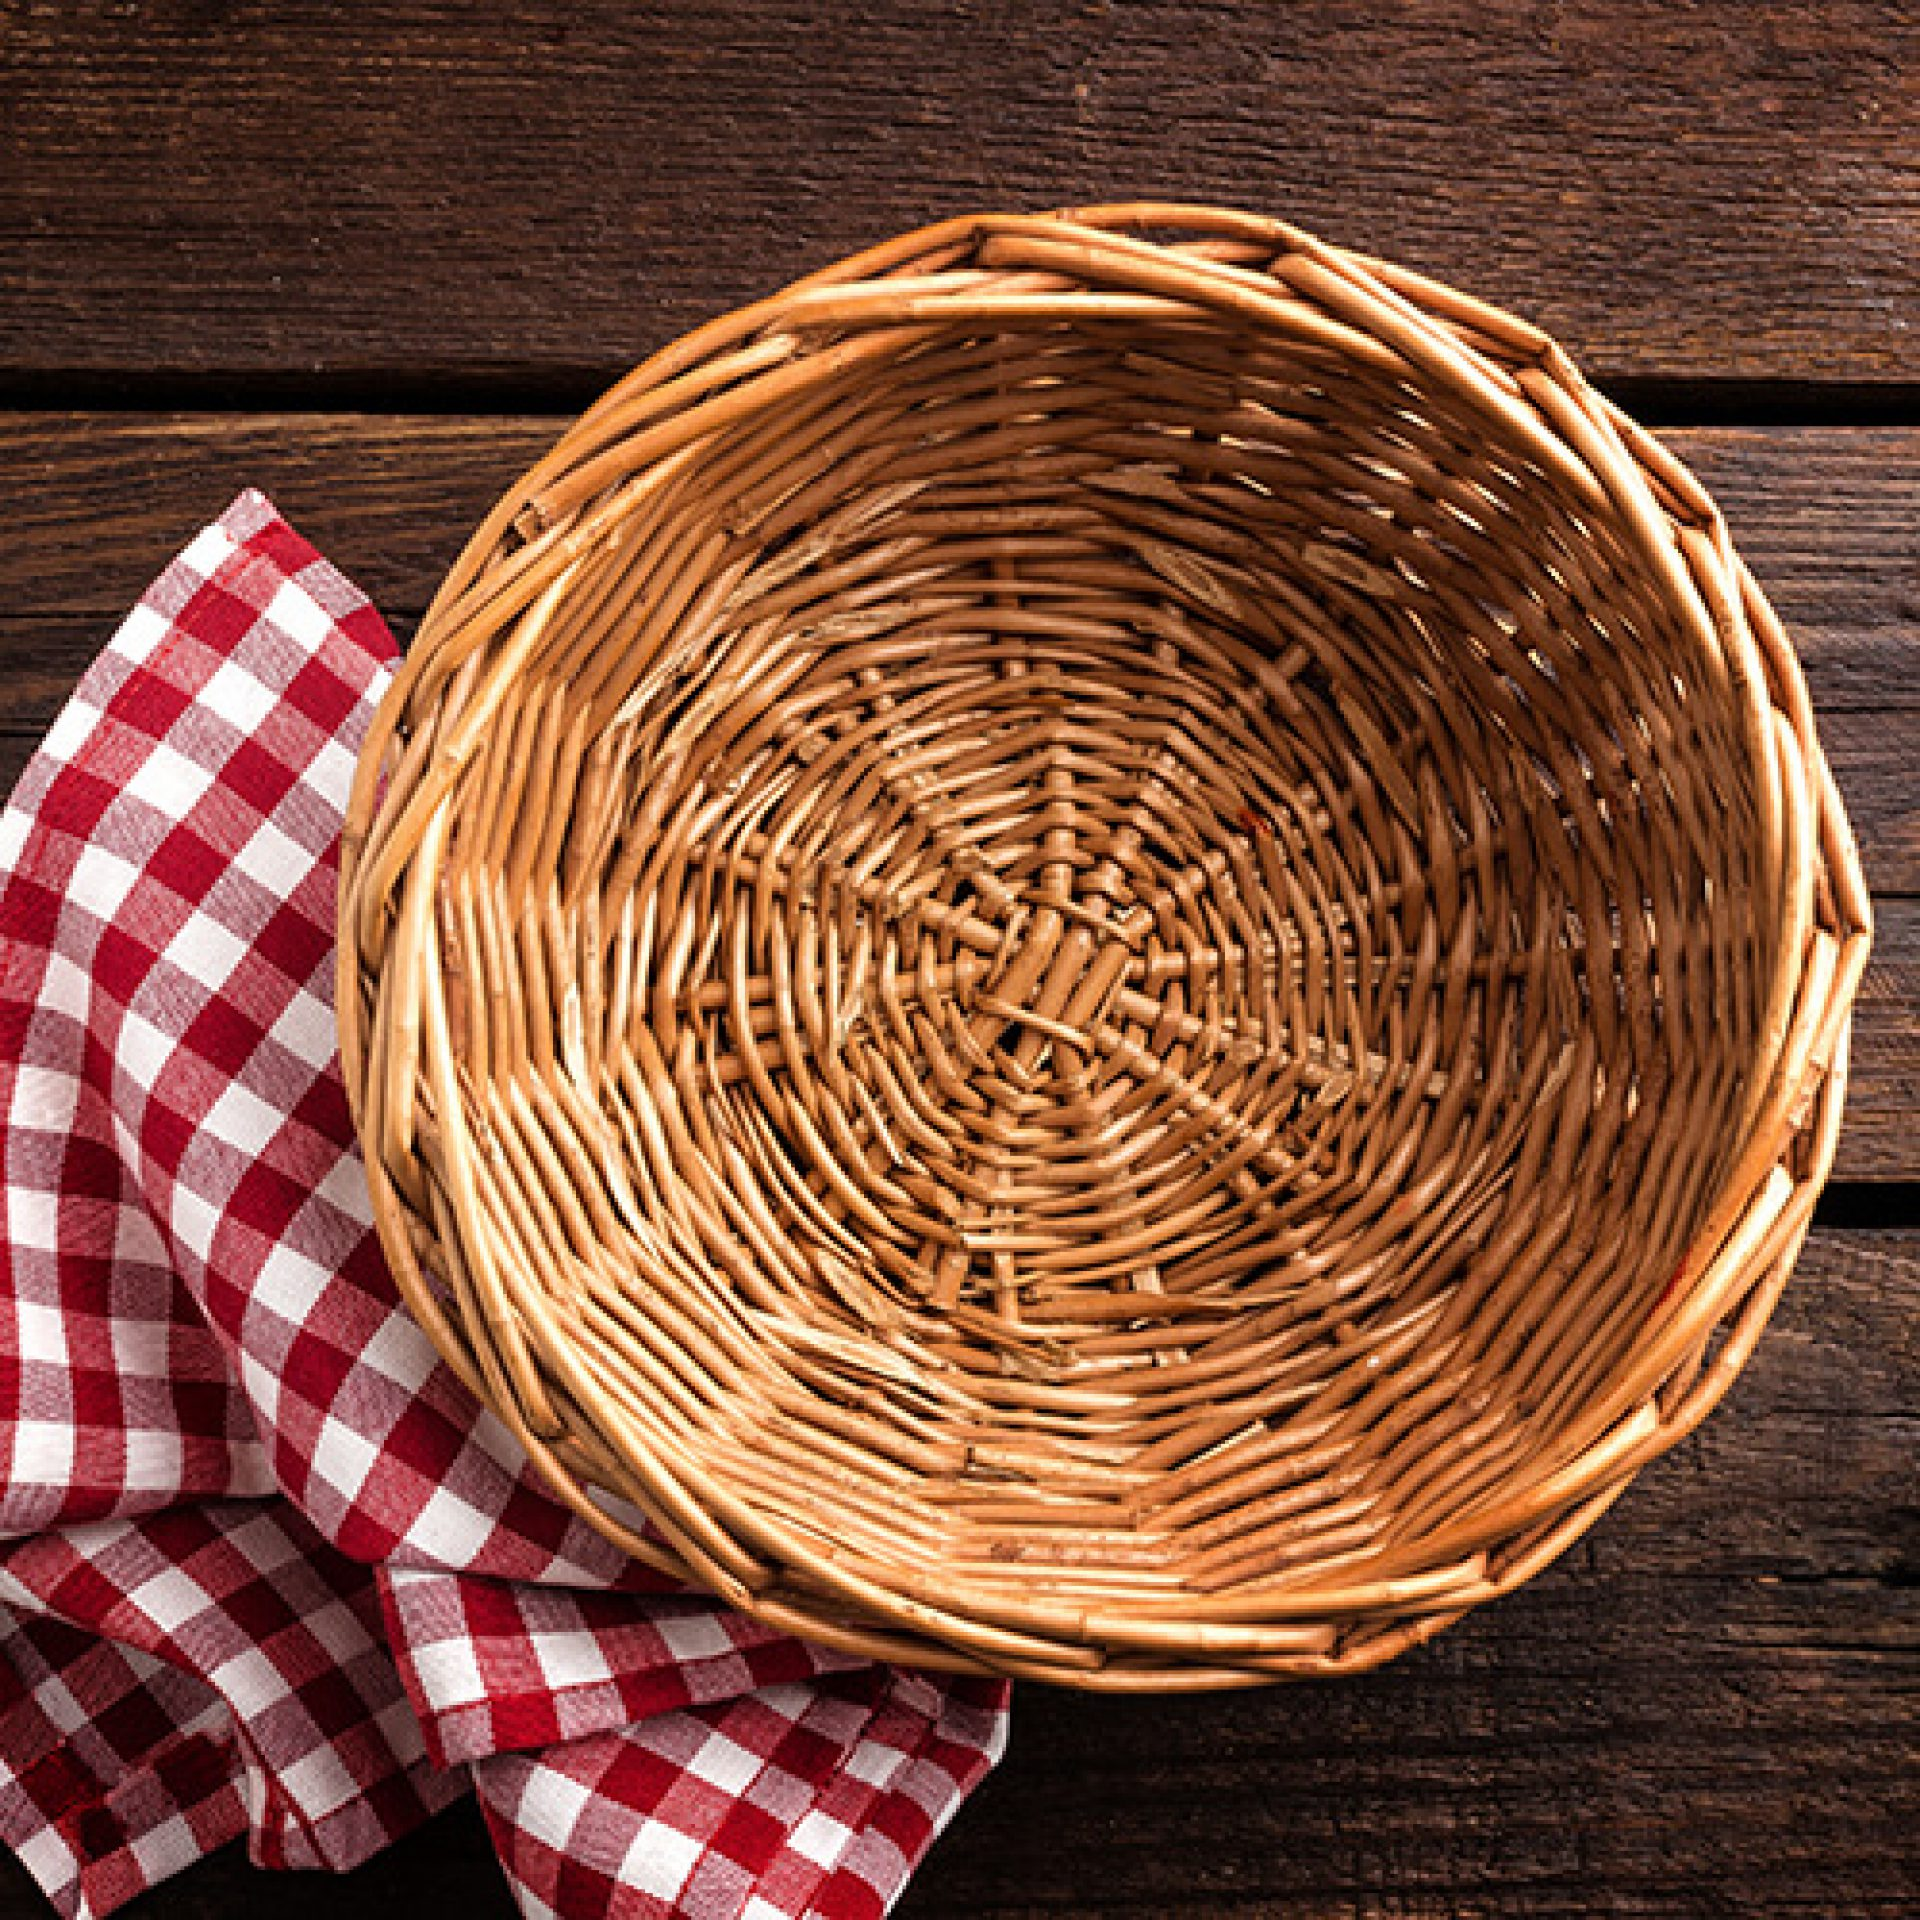 empty-wicker-basket-on-a-wooden-background-top-vie-PBVQGUZ